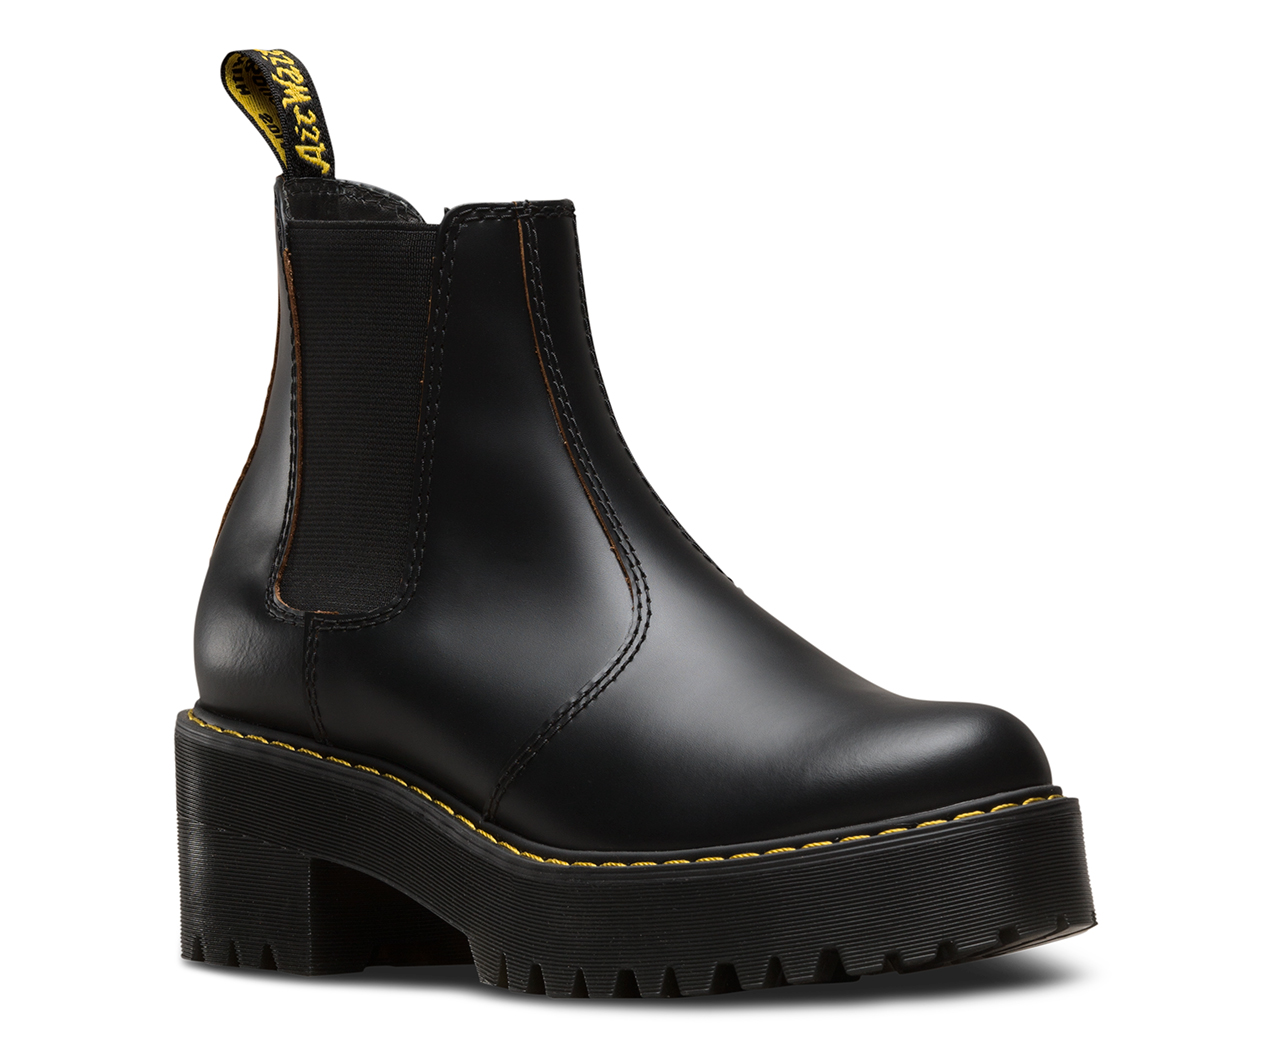 Dr. Martens Women's Rometty Vintage Smooth Leather Heeled Chelsea Boots - - UK 3 DAHGQY